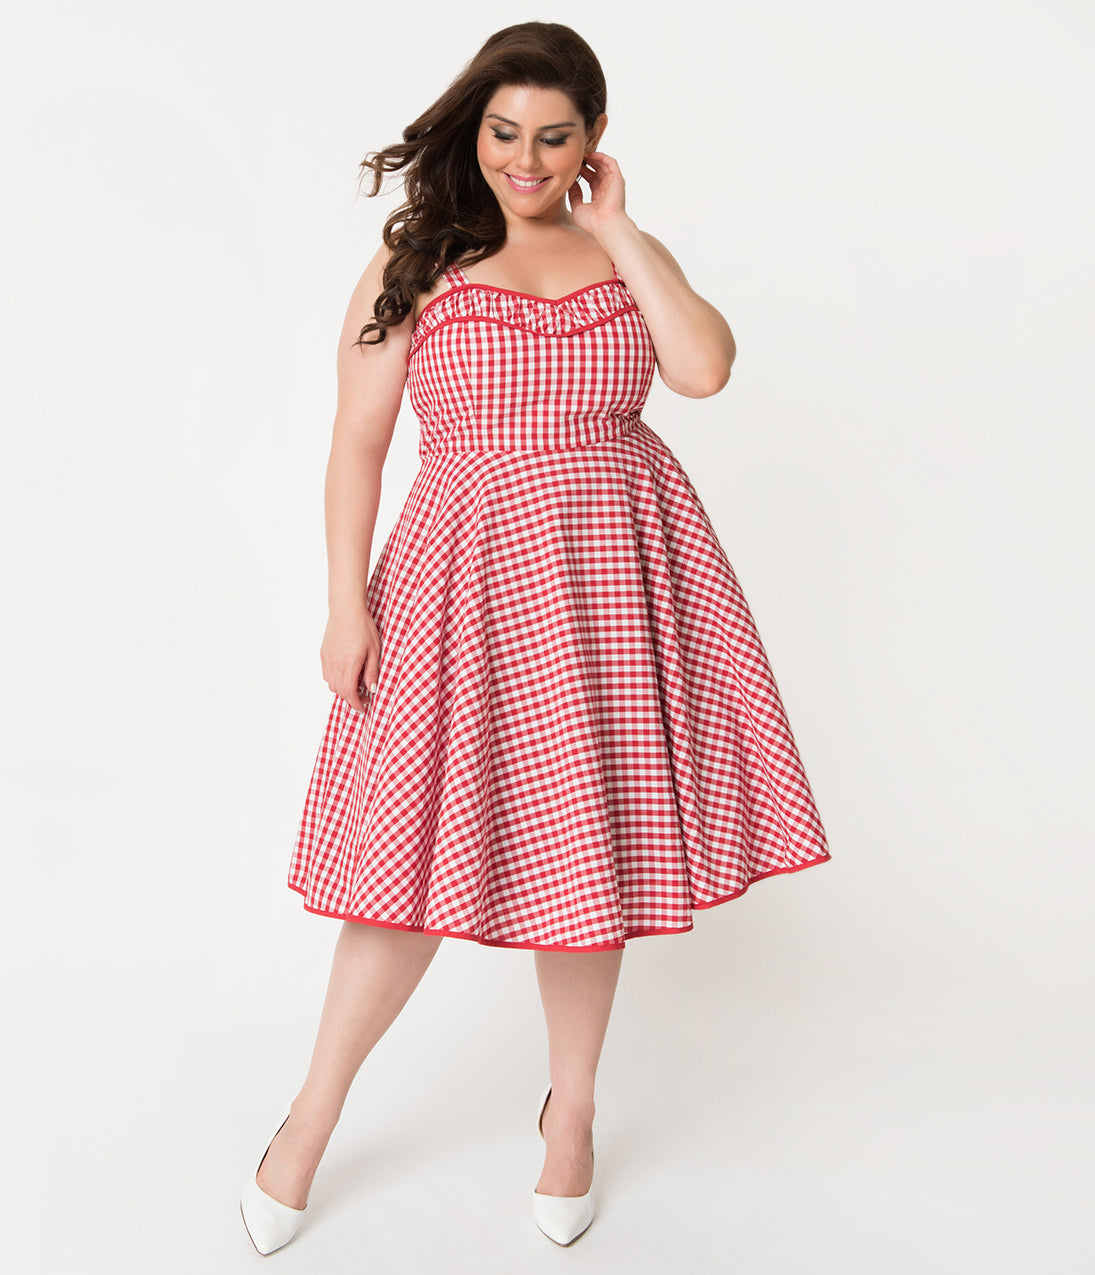 Rockabilly Dresses Rockabilly Clothing Viva Las Vegas